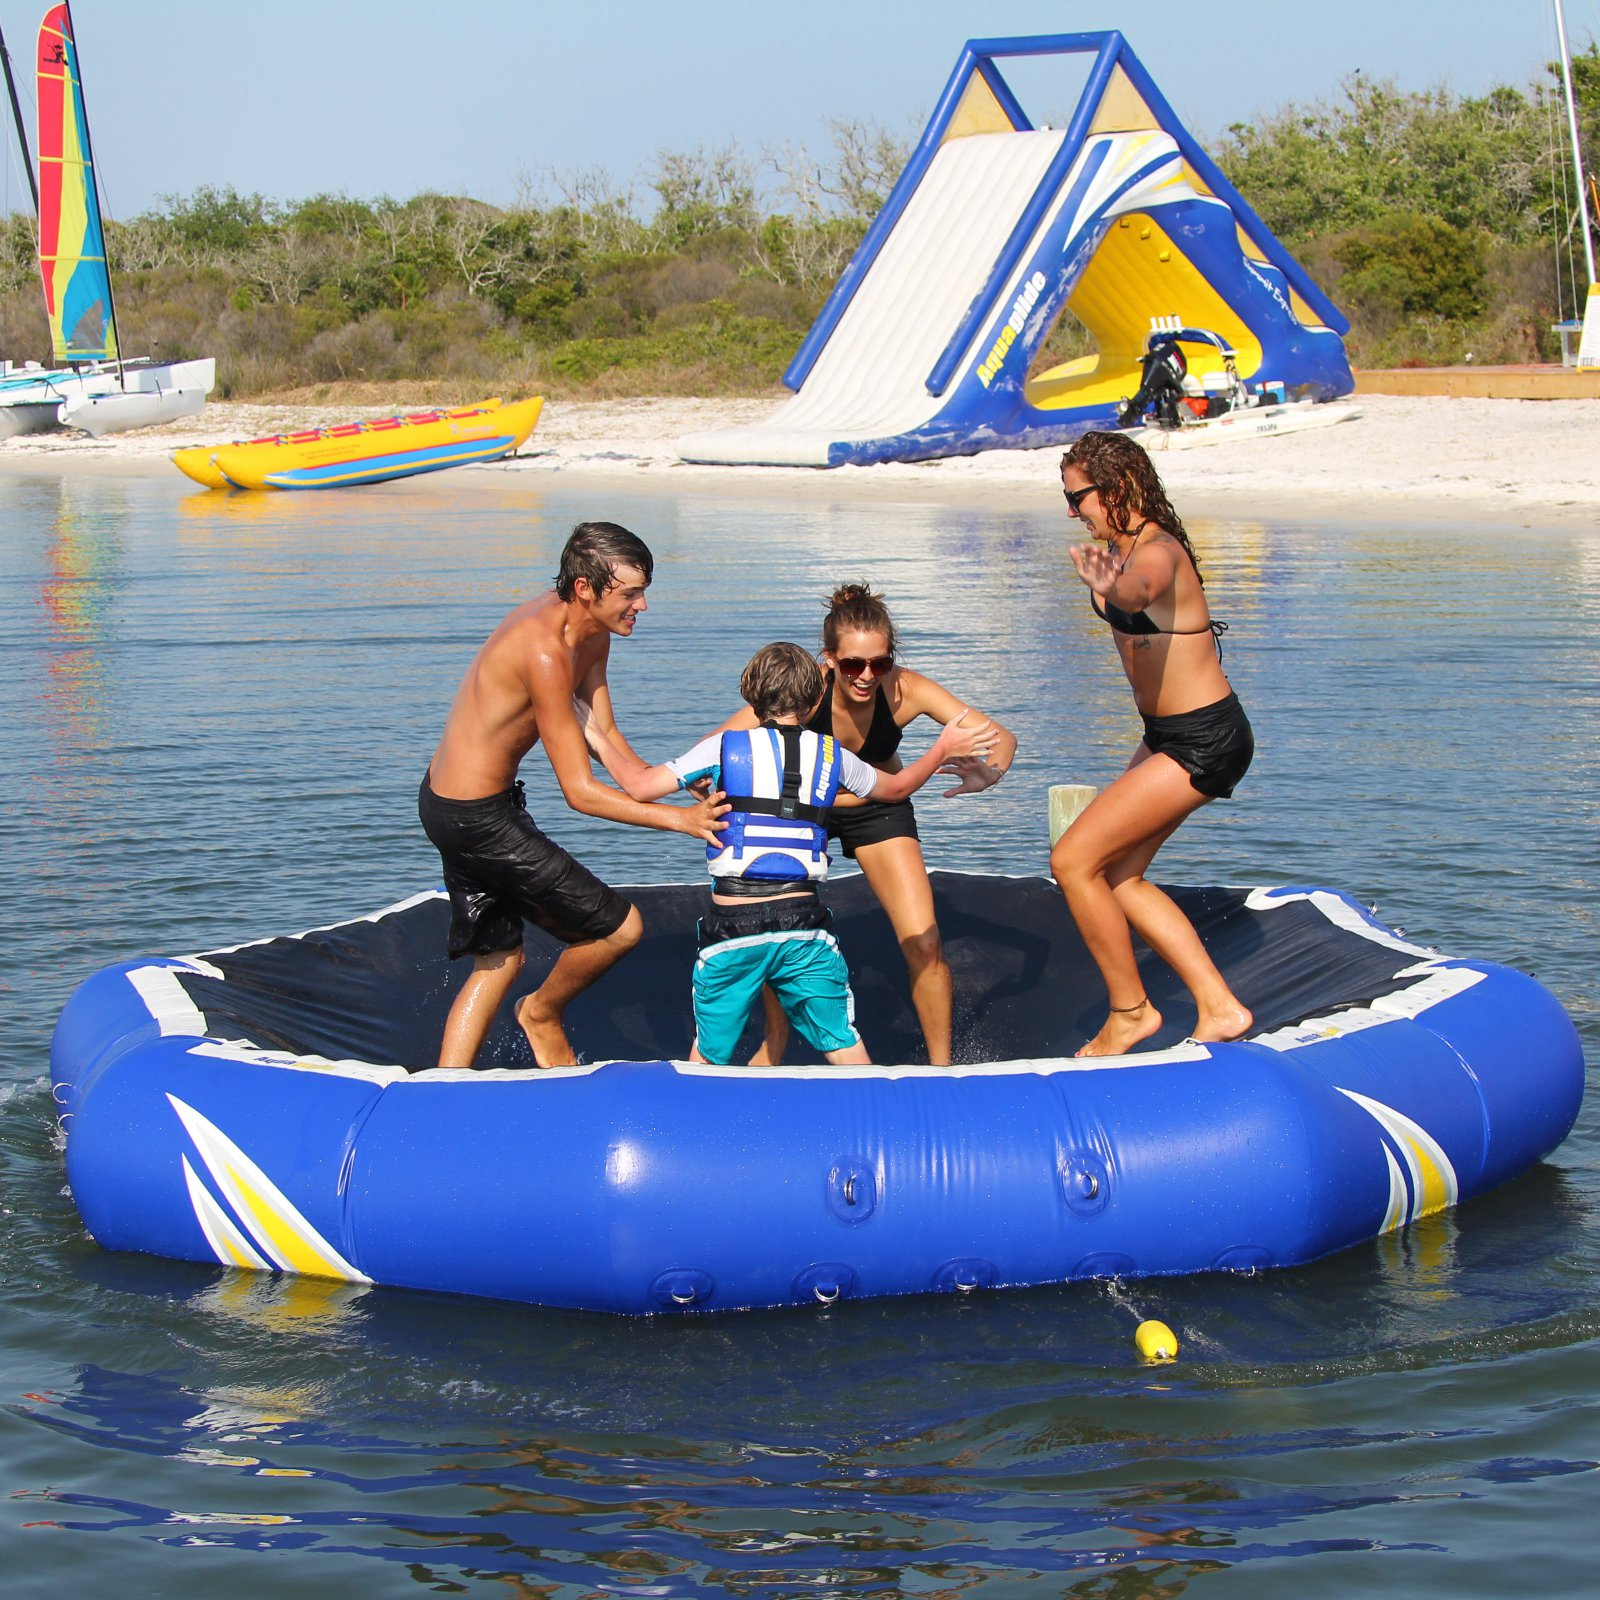 NEW Aquaglide Inversible 8 Person Water Lounge /& Platform in Blue Color